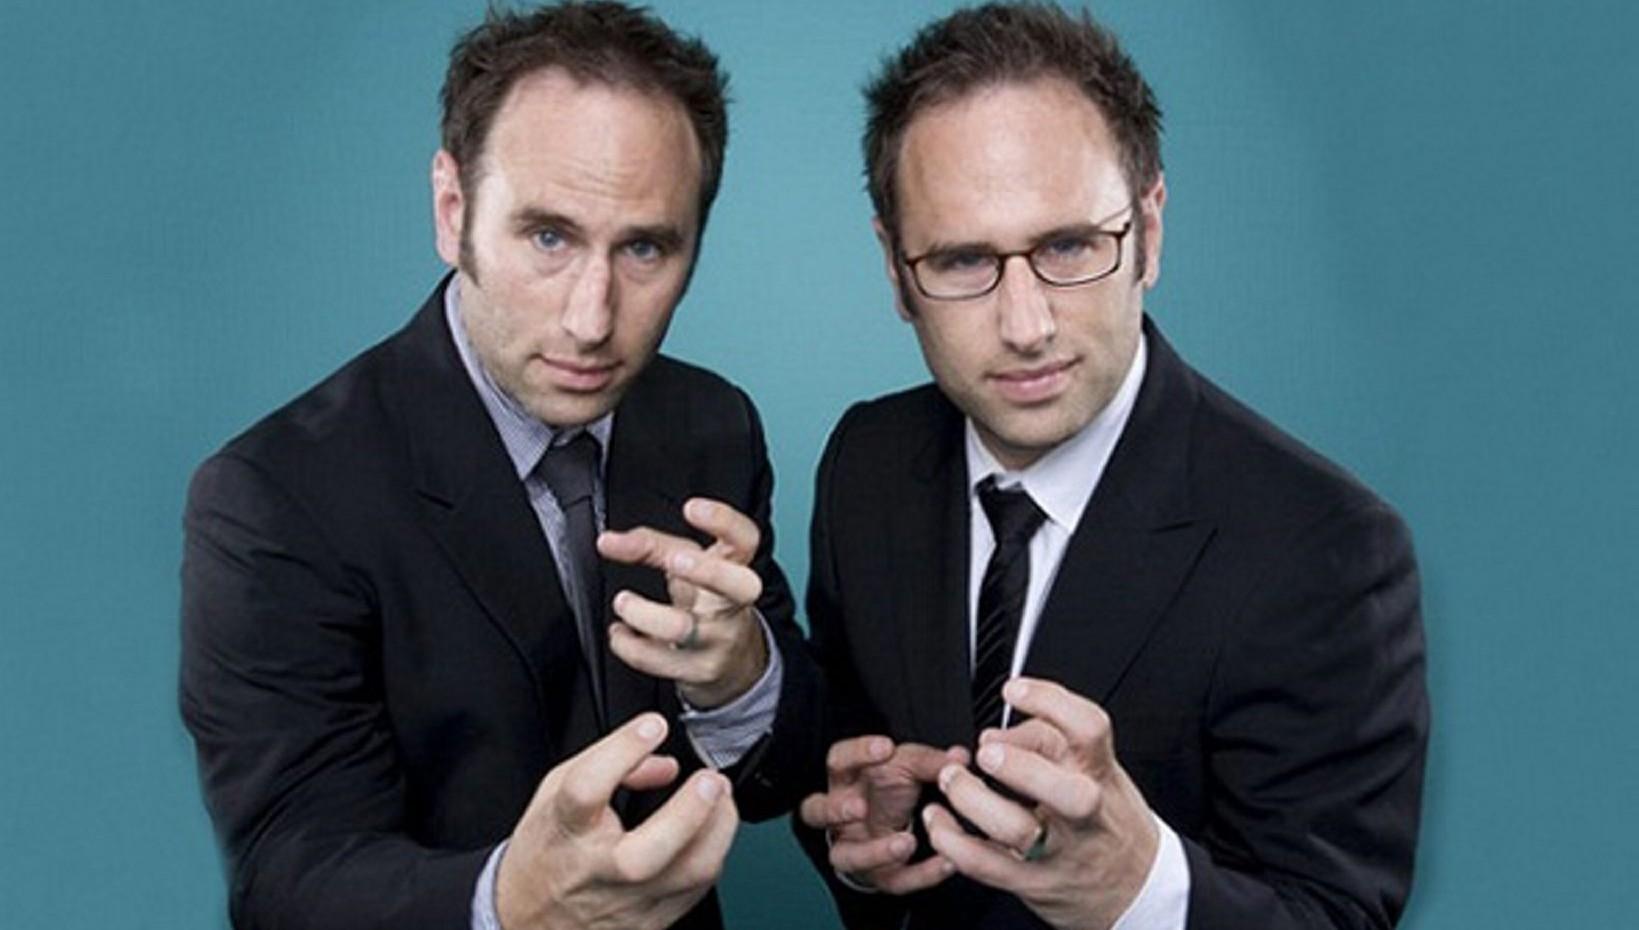 The Sklar Brothers have a new set of jokes about Buffalo.